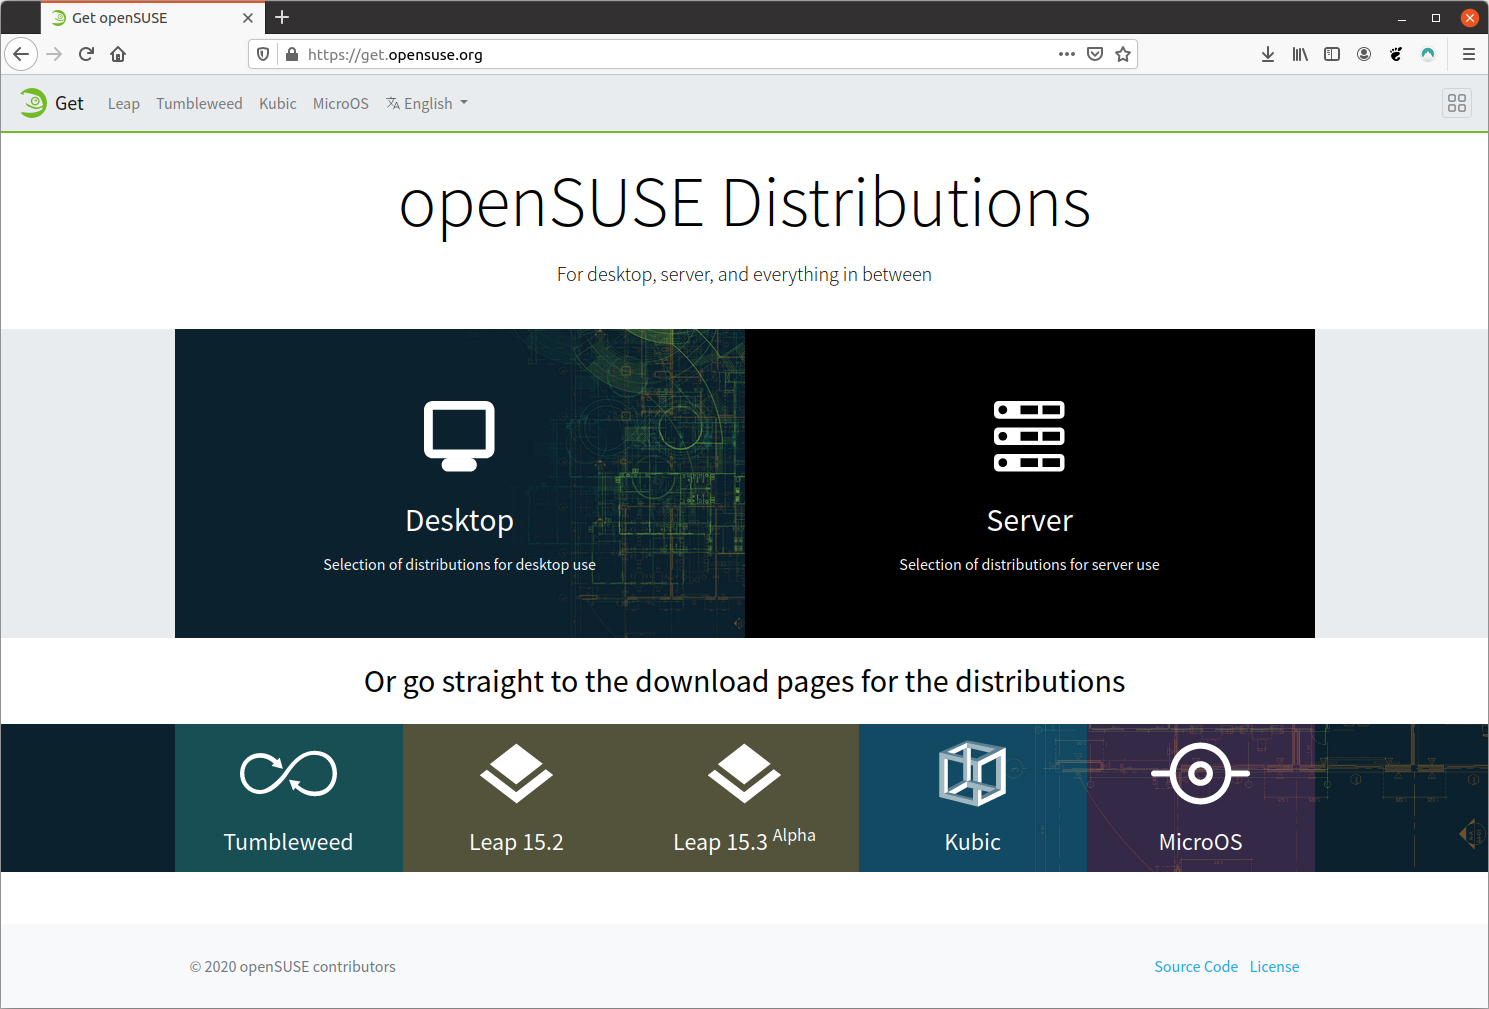 openSUSE distributions dedicated page